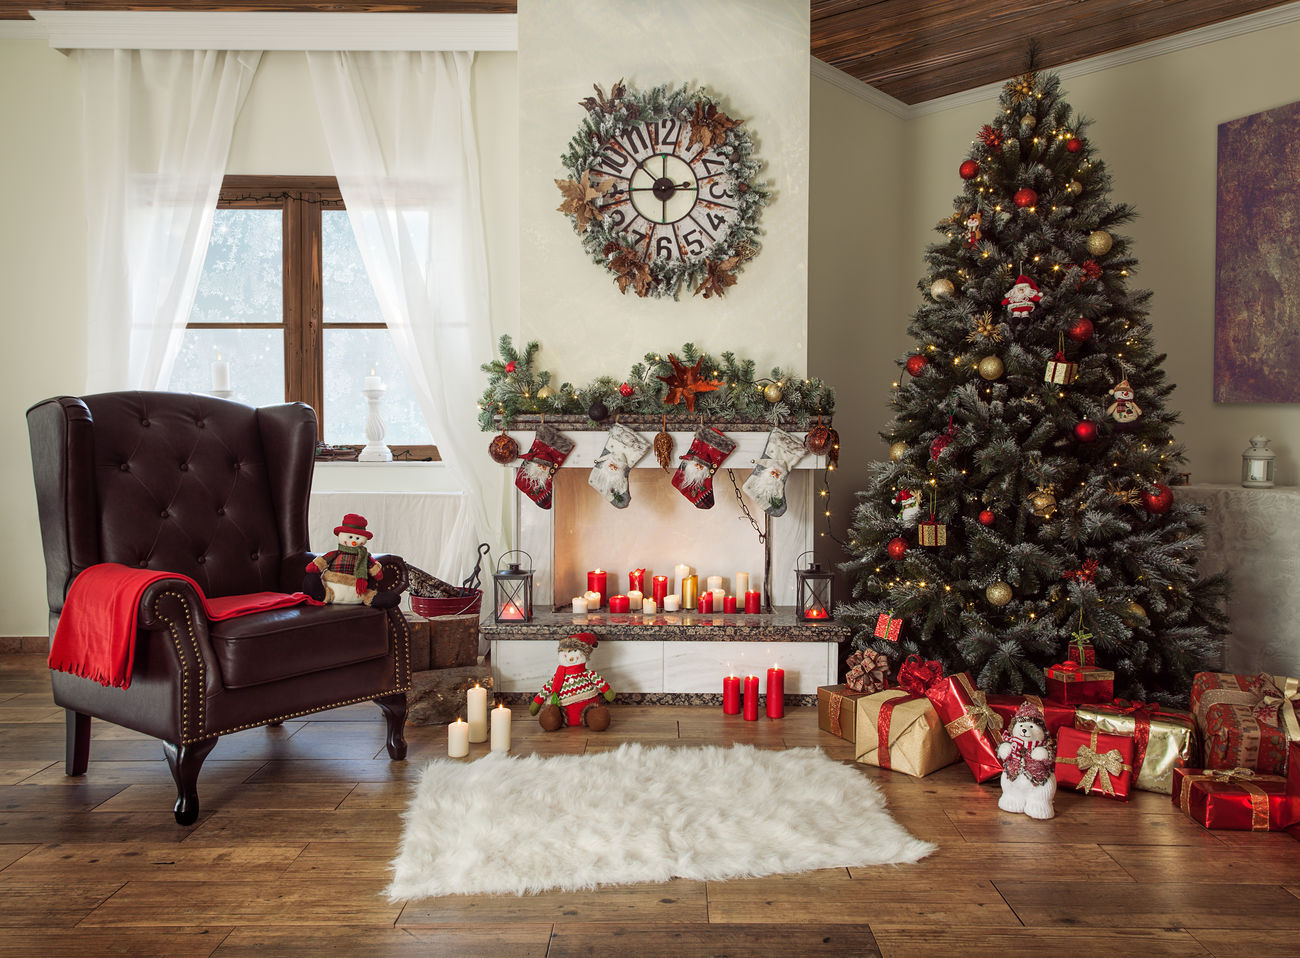 Beautiful decorated living room with a christmas tree and a fire place Armchair Art Background Bright Brown Candles Christmas Classic Decoration Design Dezember Festive Fire Fireplace Green Indoor Presents Red Seasonal Traditional Tree White Window Winter Xmas